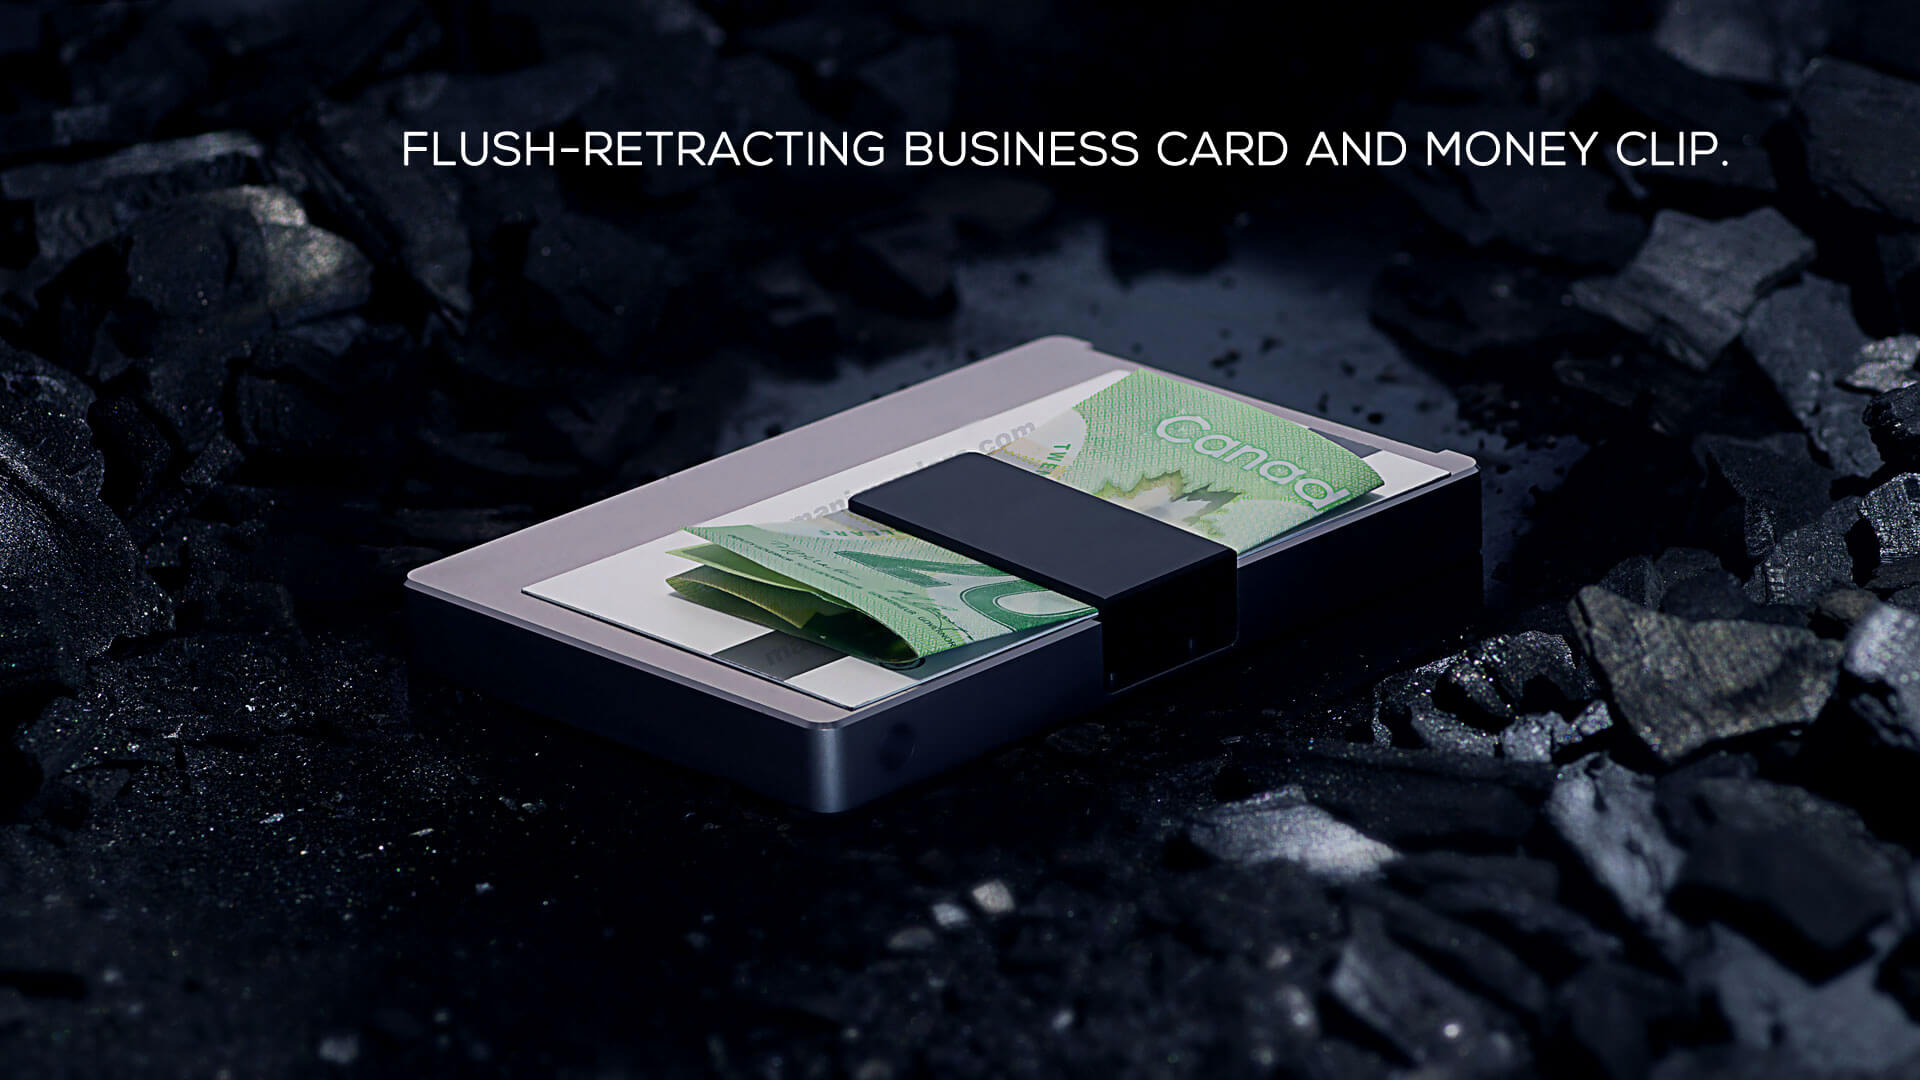 Flush-retracting business card and money clip.